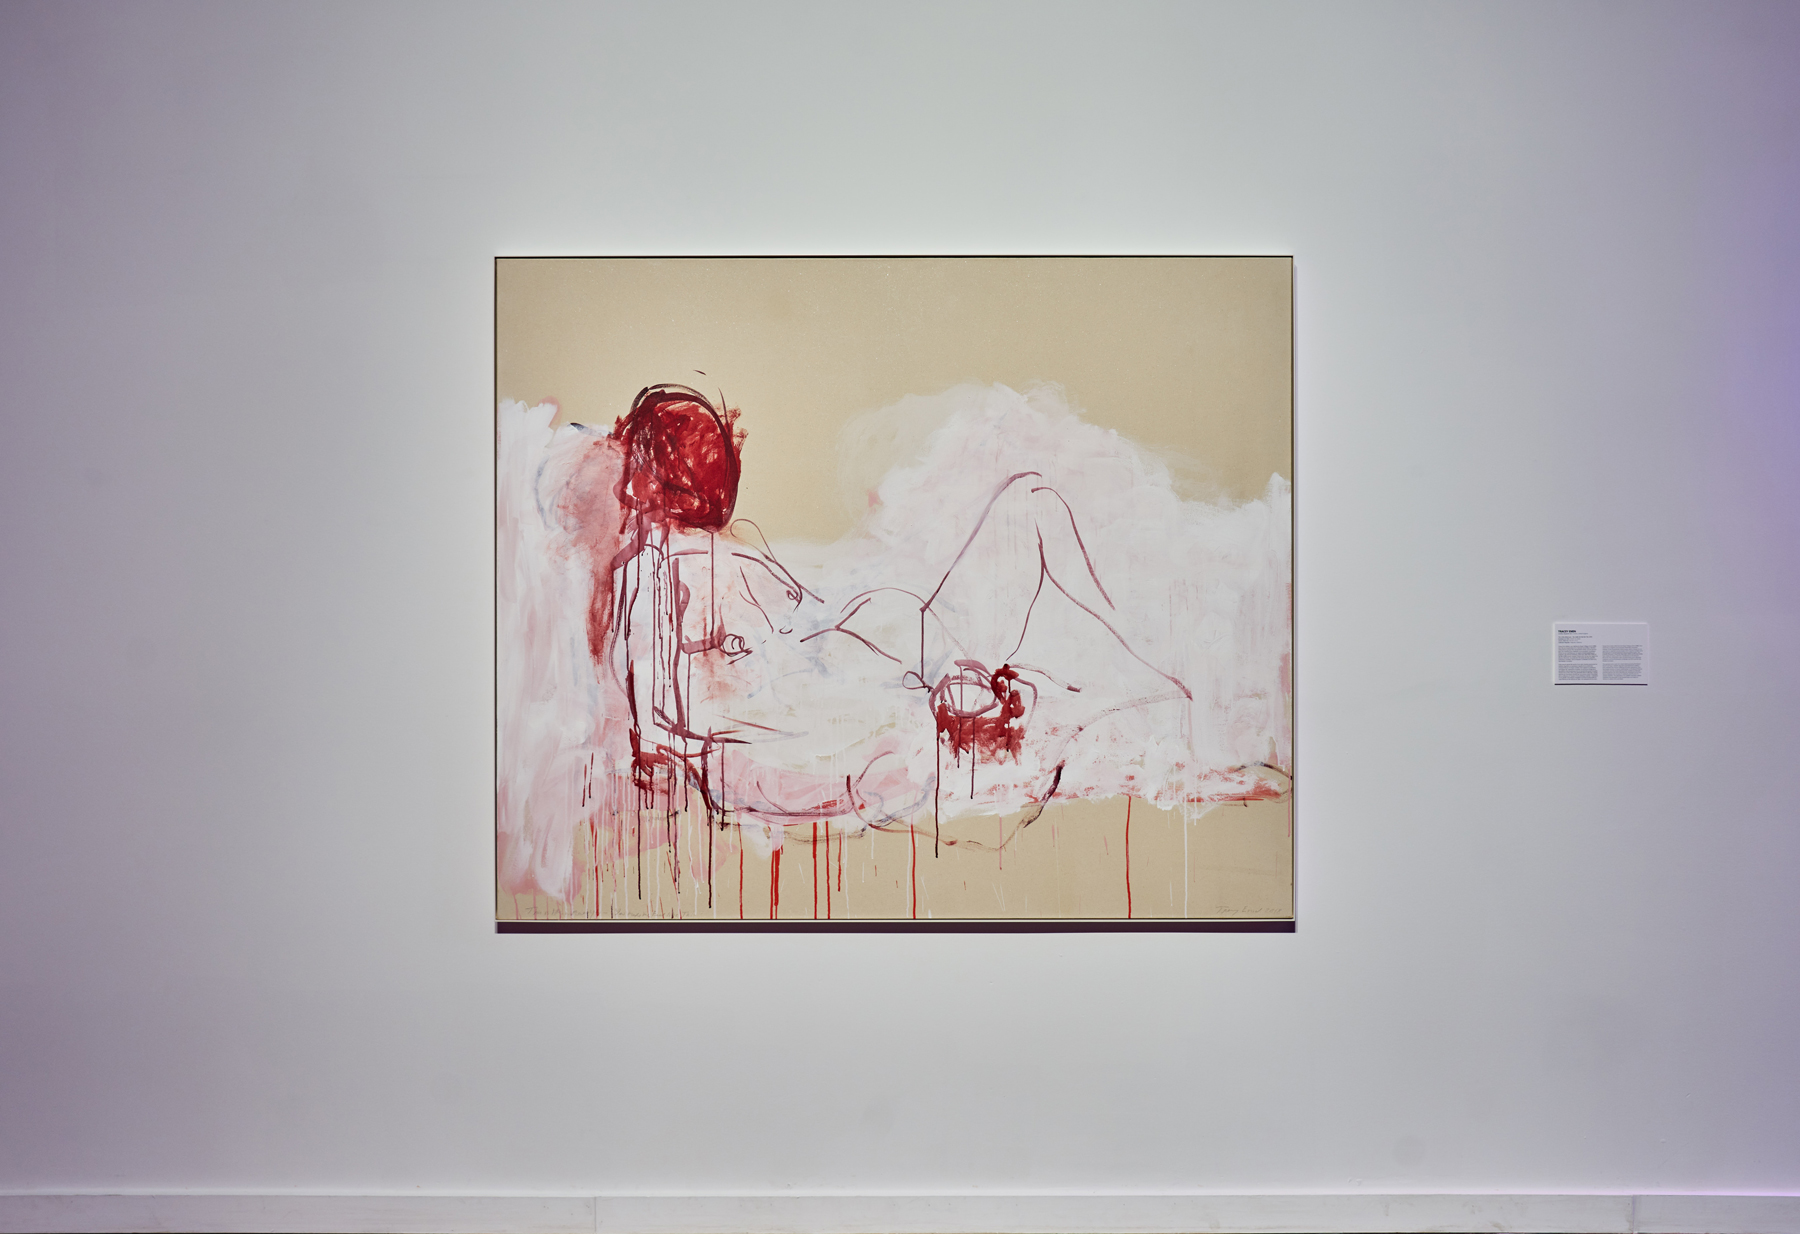 """Tracey Emin ,  This is life without you - You made me Feel like This , 2018, Acrylic on canvas, 59 3/4"""" x 72"""" (151,8 x 182,9 cm). Photo credit: Romain Guilbault"""